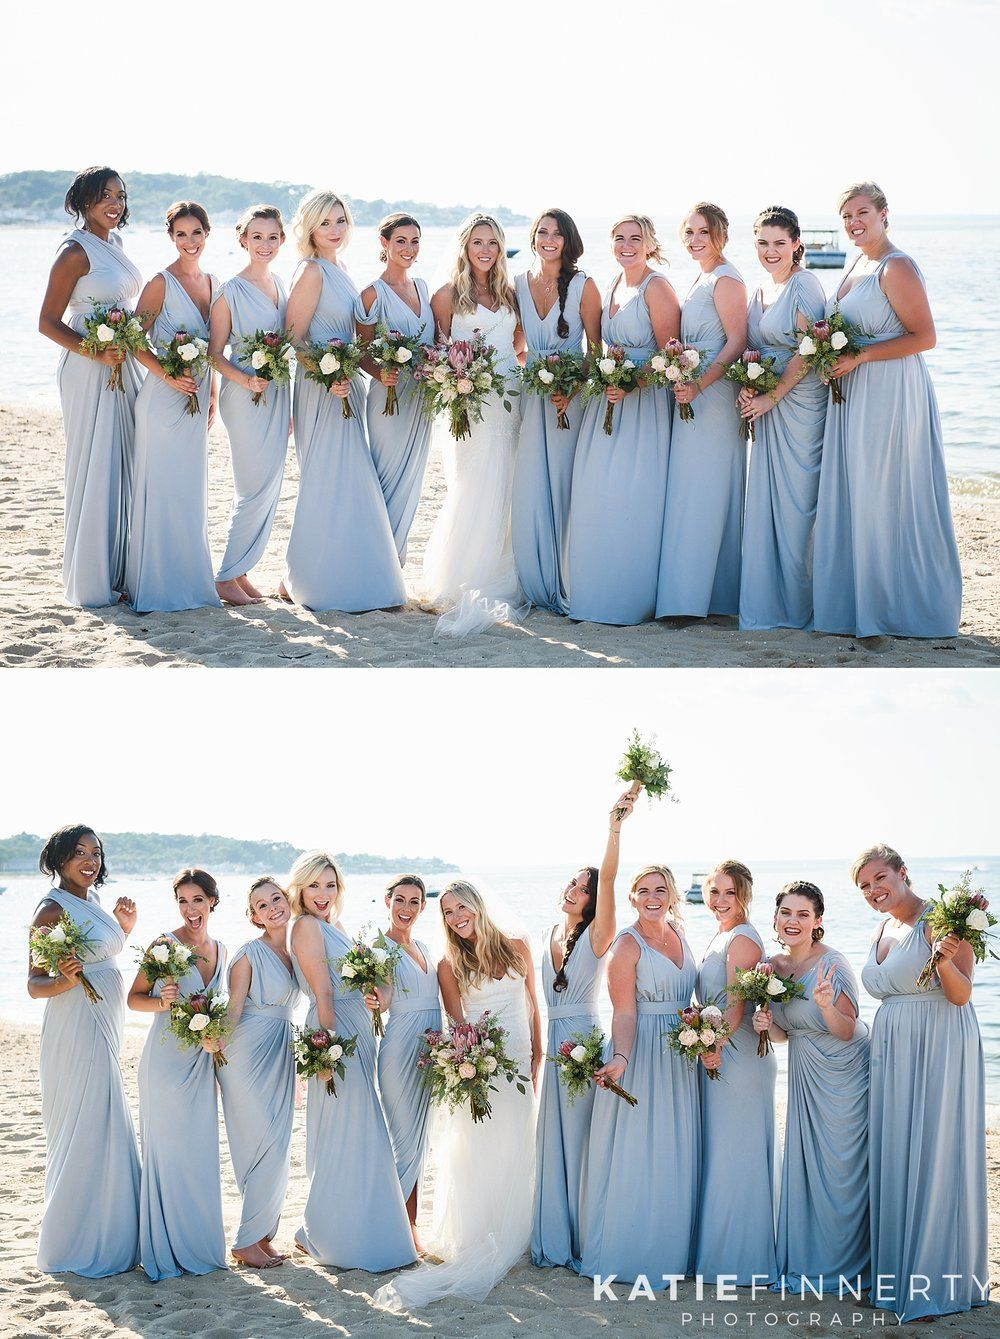 Love these light blue bridesmaid dresses from the white runway for love these light blue bridesmaid dresses from the white runway for this long island wedding at the crescent beach club photographed by rochester ny ombrellifo Choice Image